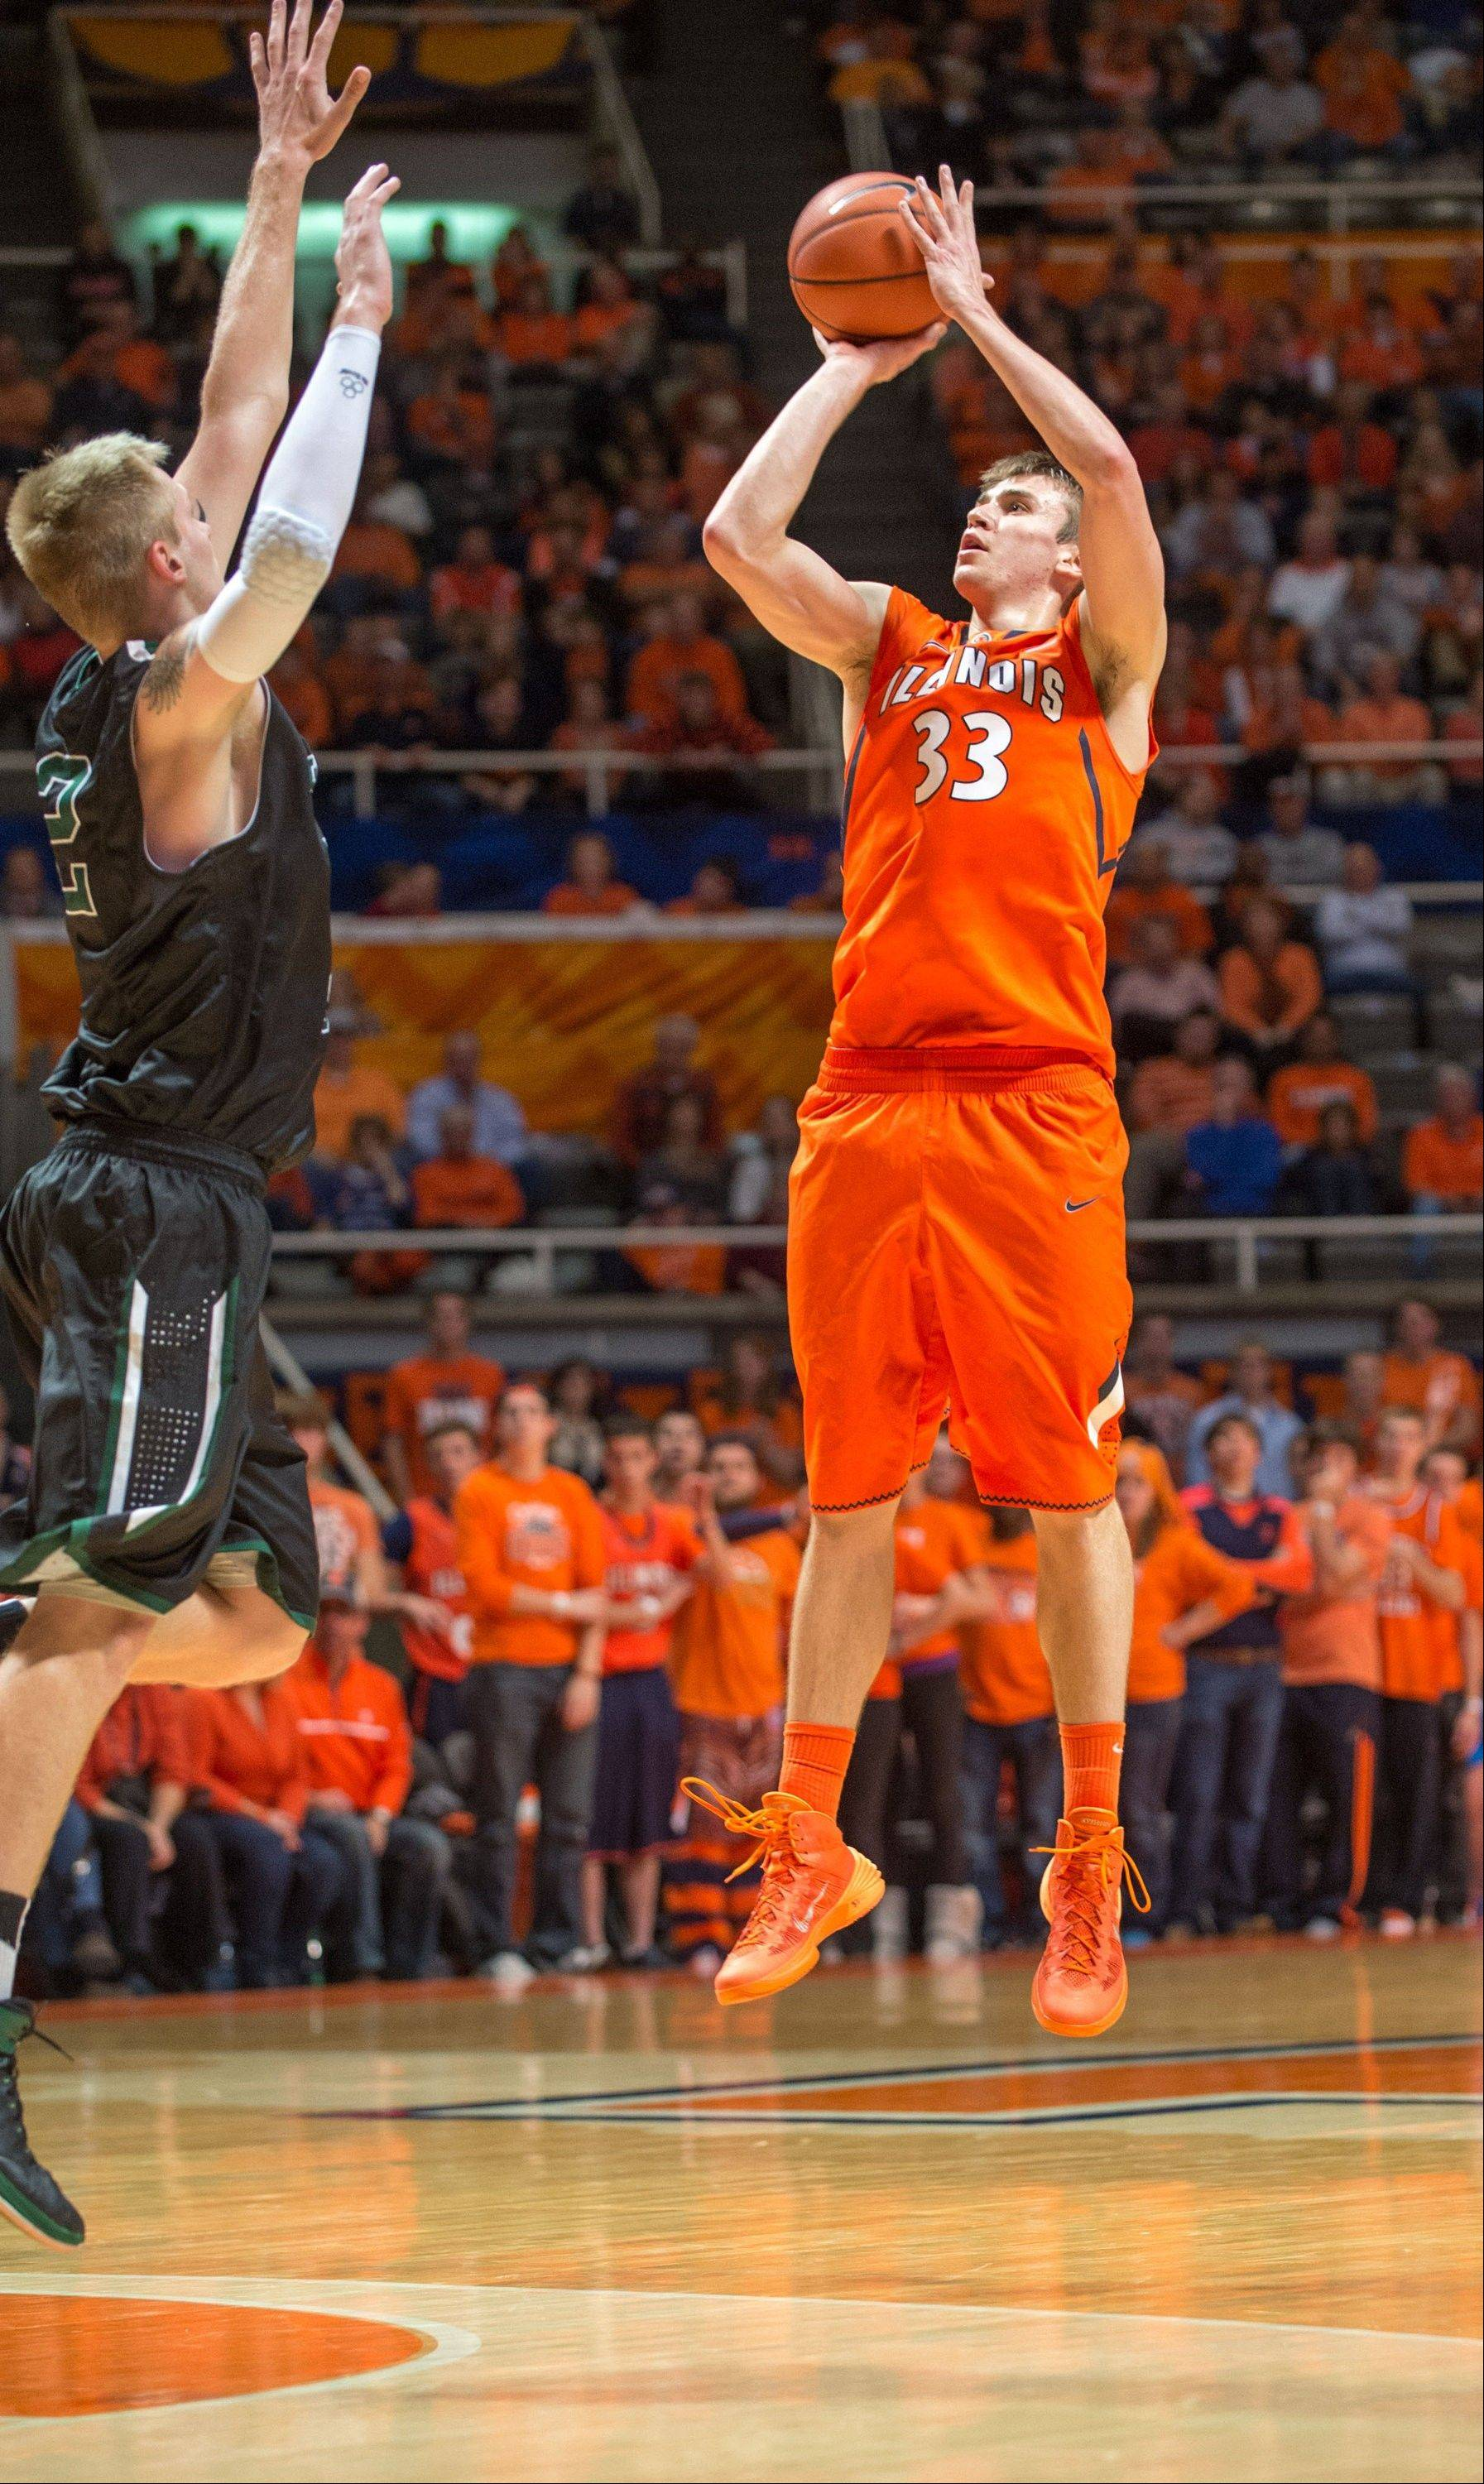 Ekey leads Illinois past Chicago State 77-53